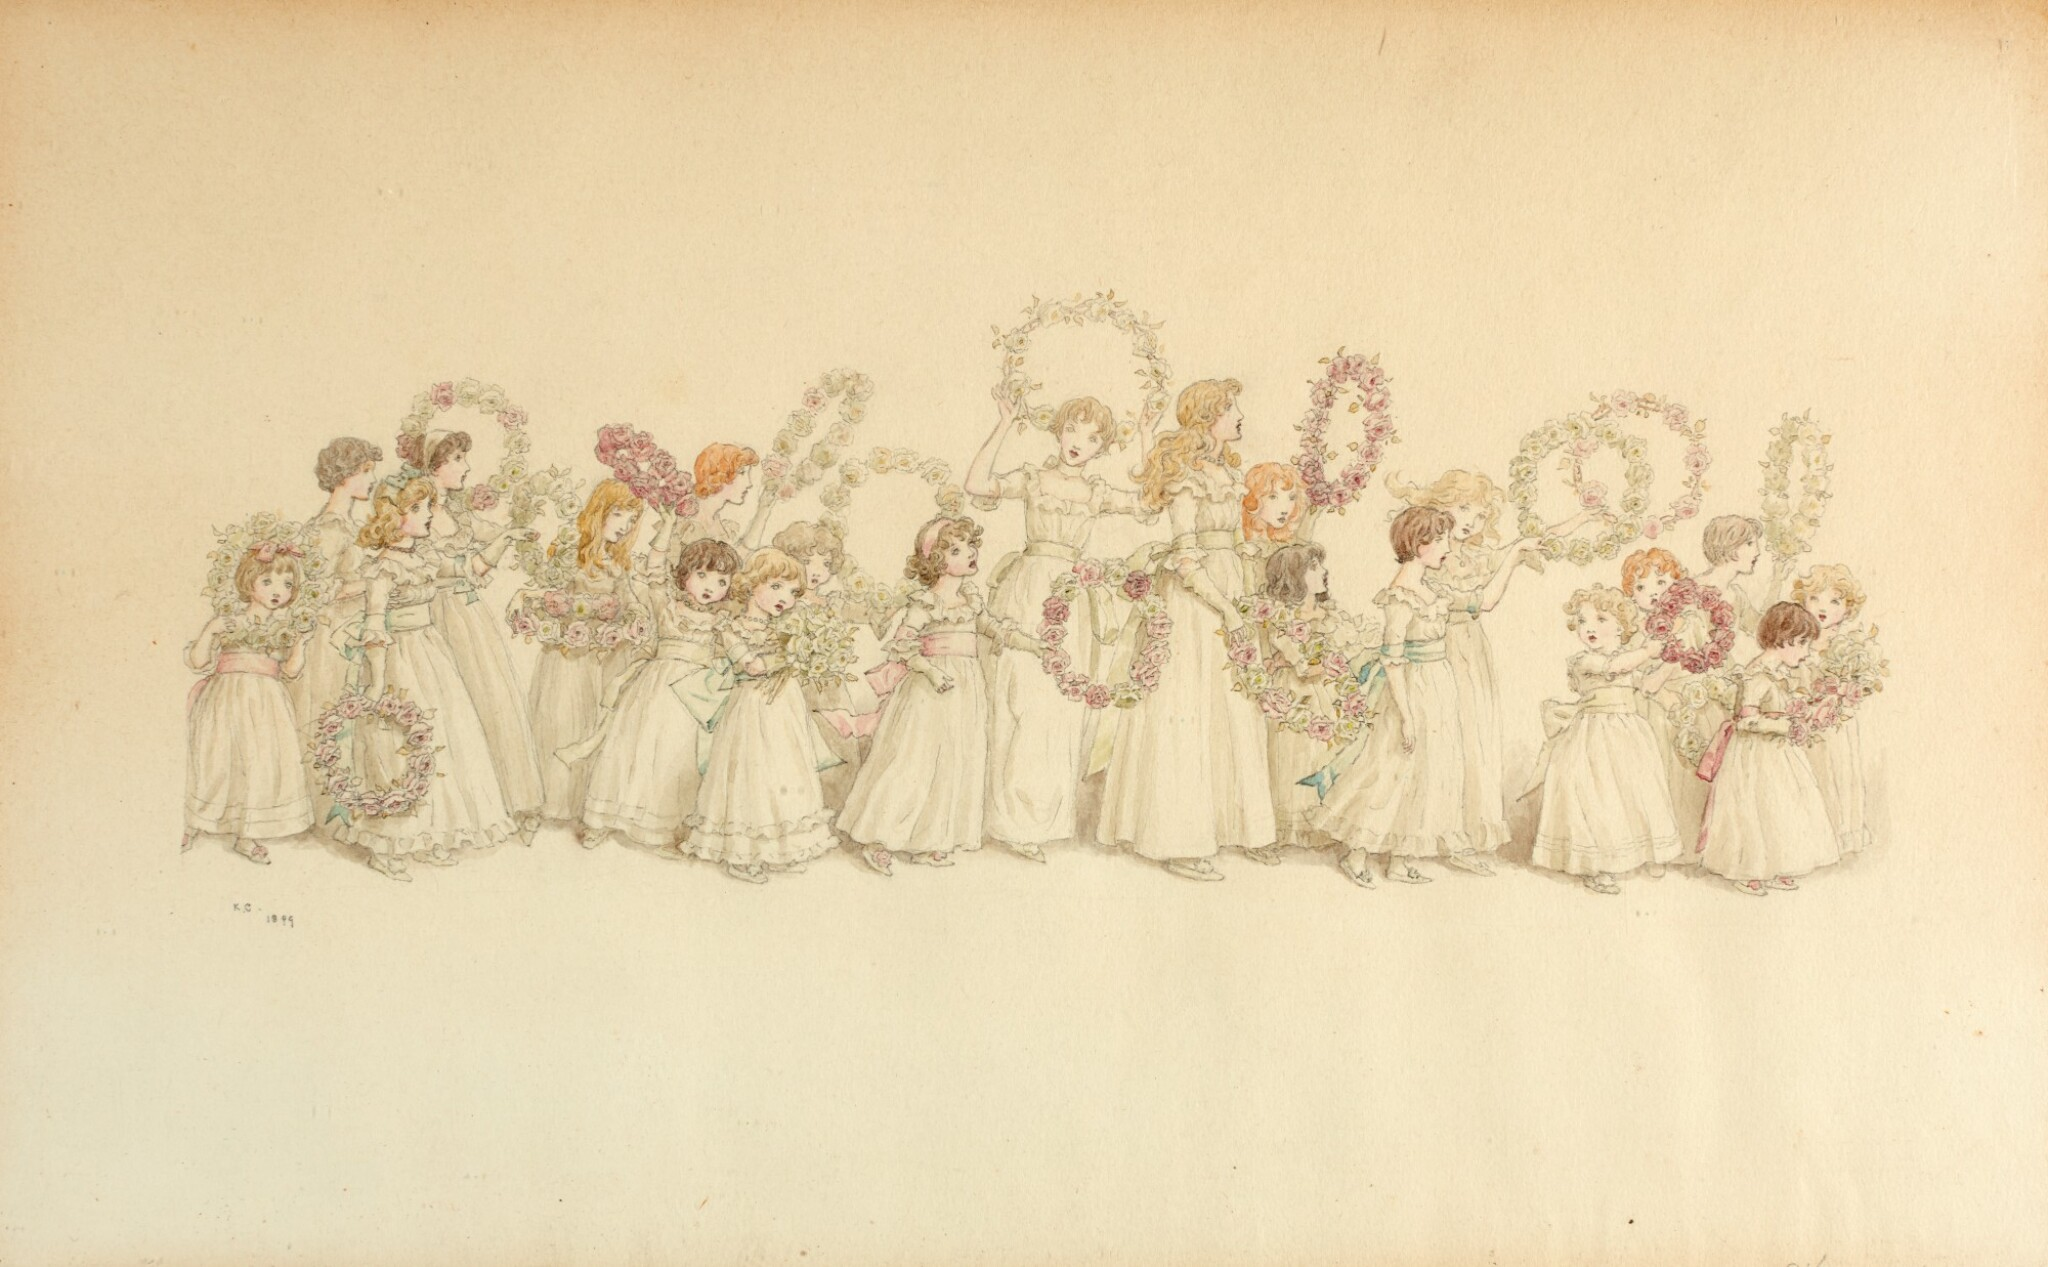 View full screen - View 1 of Lot 75. GREENAWAY | Procession of Maidens with Pink Garlands, pencil and watercolour drawing, 1899.